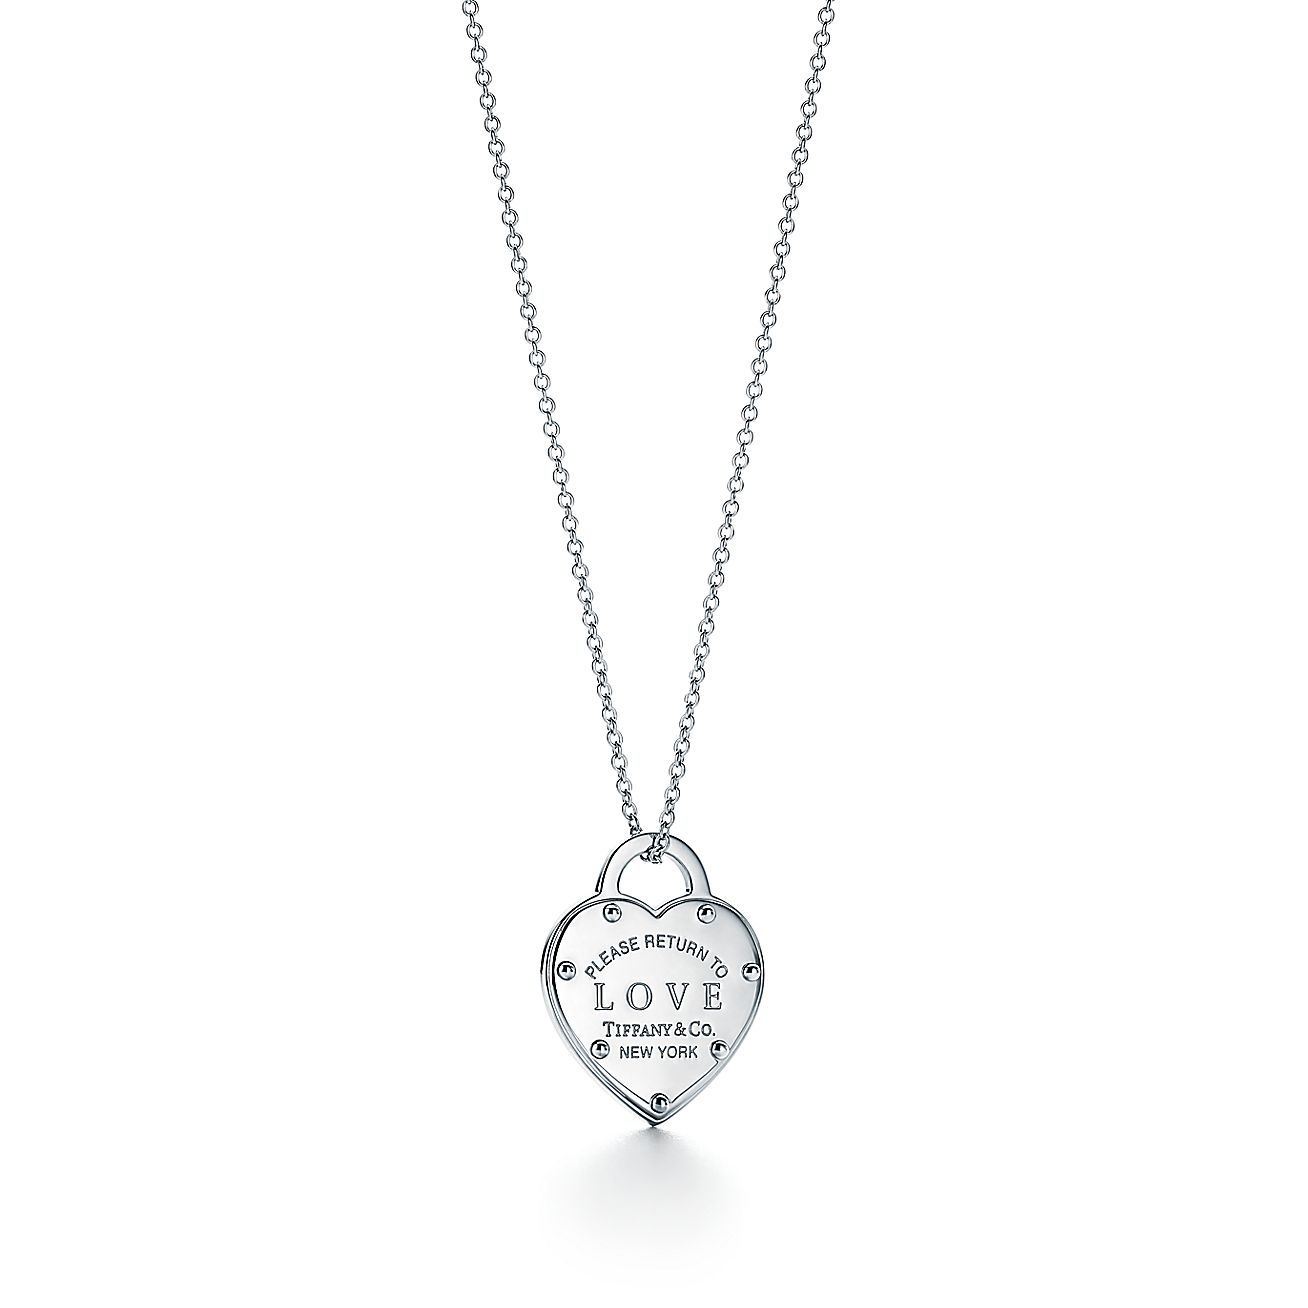 Return to tiffany sterling silver love heart pendant tiffany return to tiffany sterling silver love heart pendant tiffany co tiffany co aloadofball Image collections